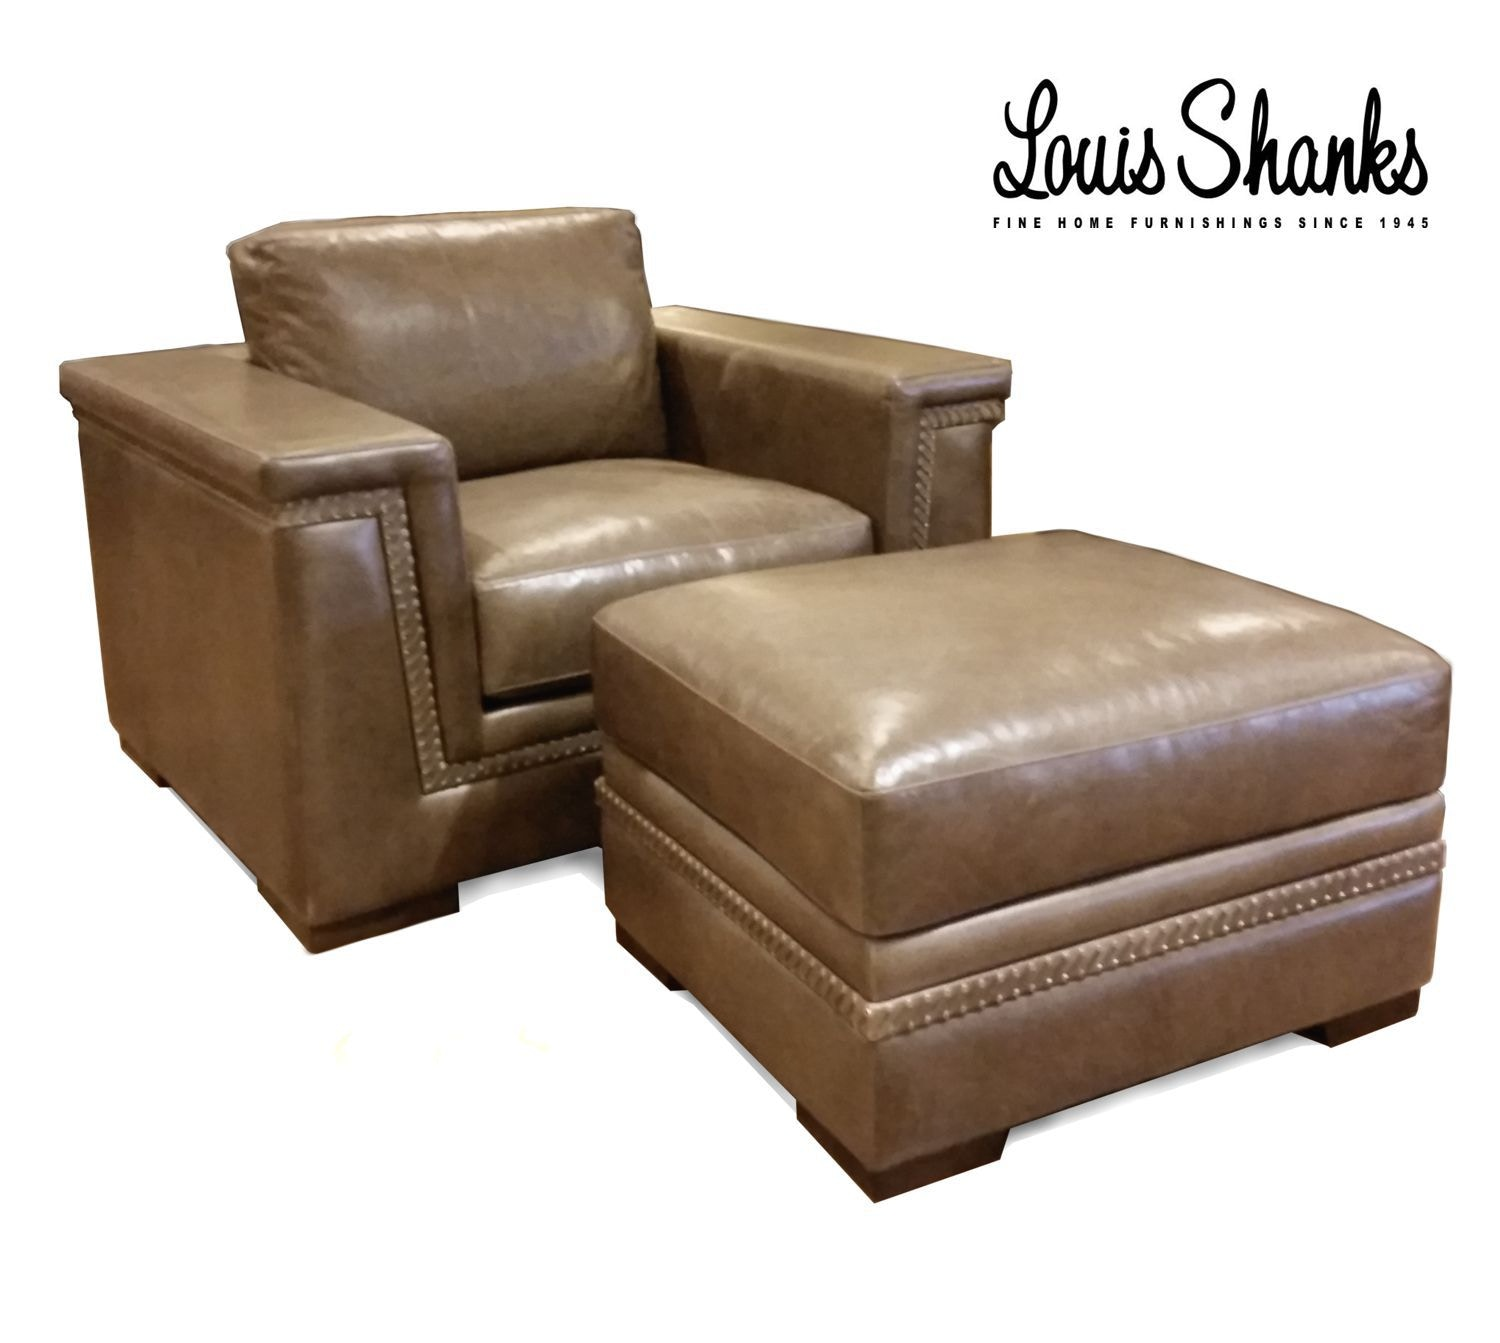 Artistic Leather Chair And Ottoman Set With Hand Lacing AL 1221 1 S